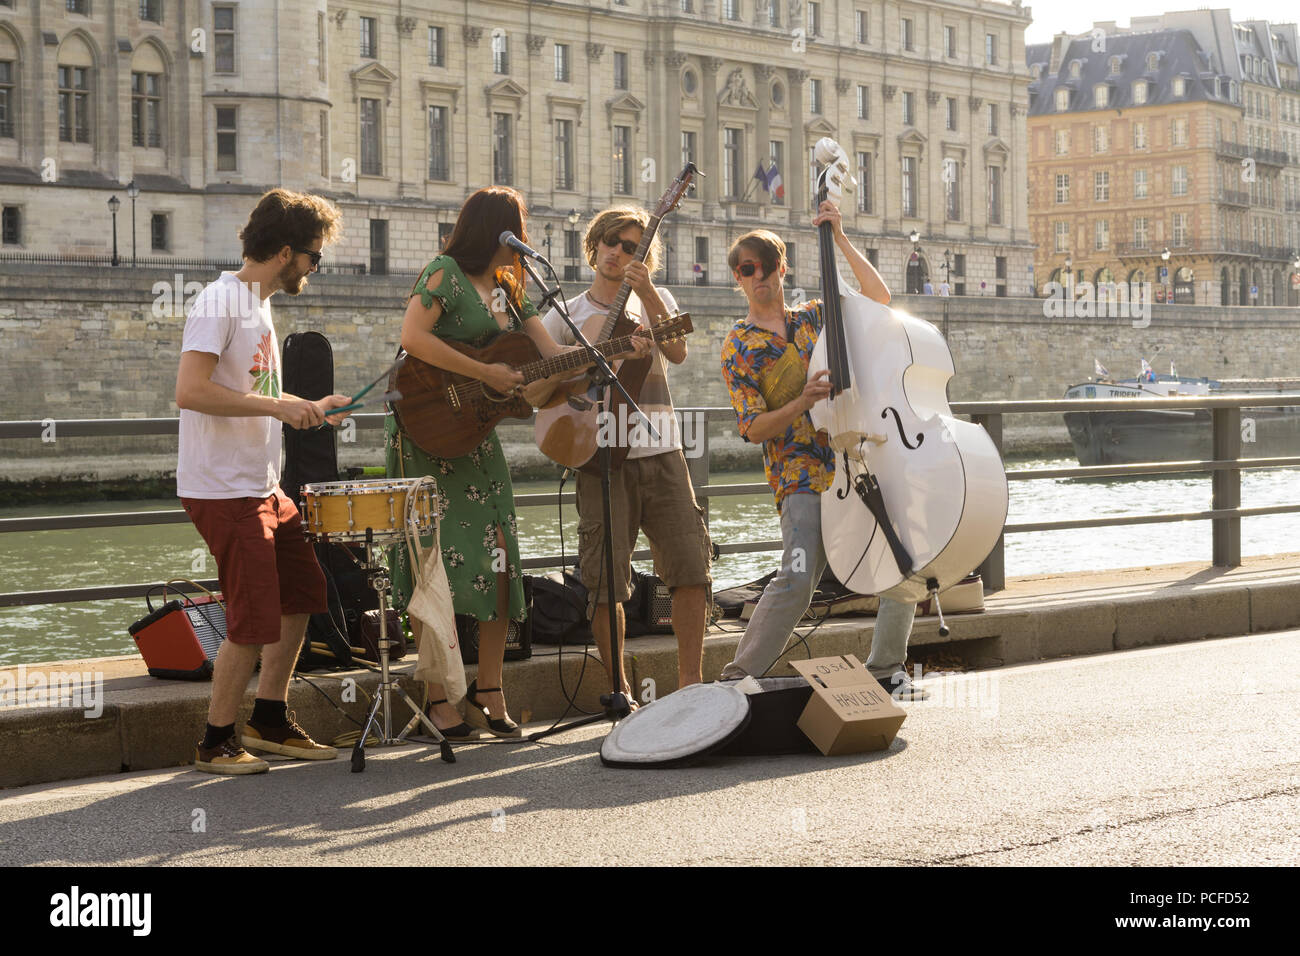 Street musicians playing at the embankment of the Seine River in Paris, France. - Stock Image